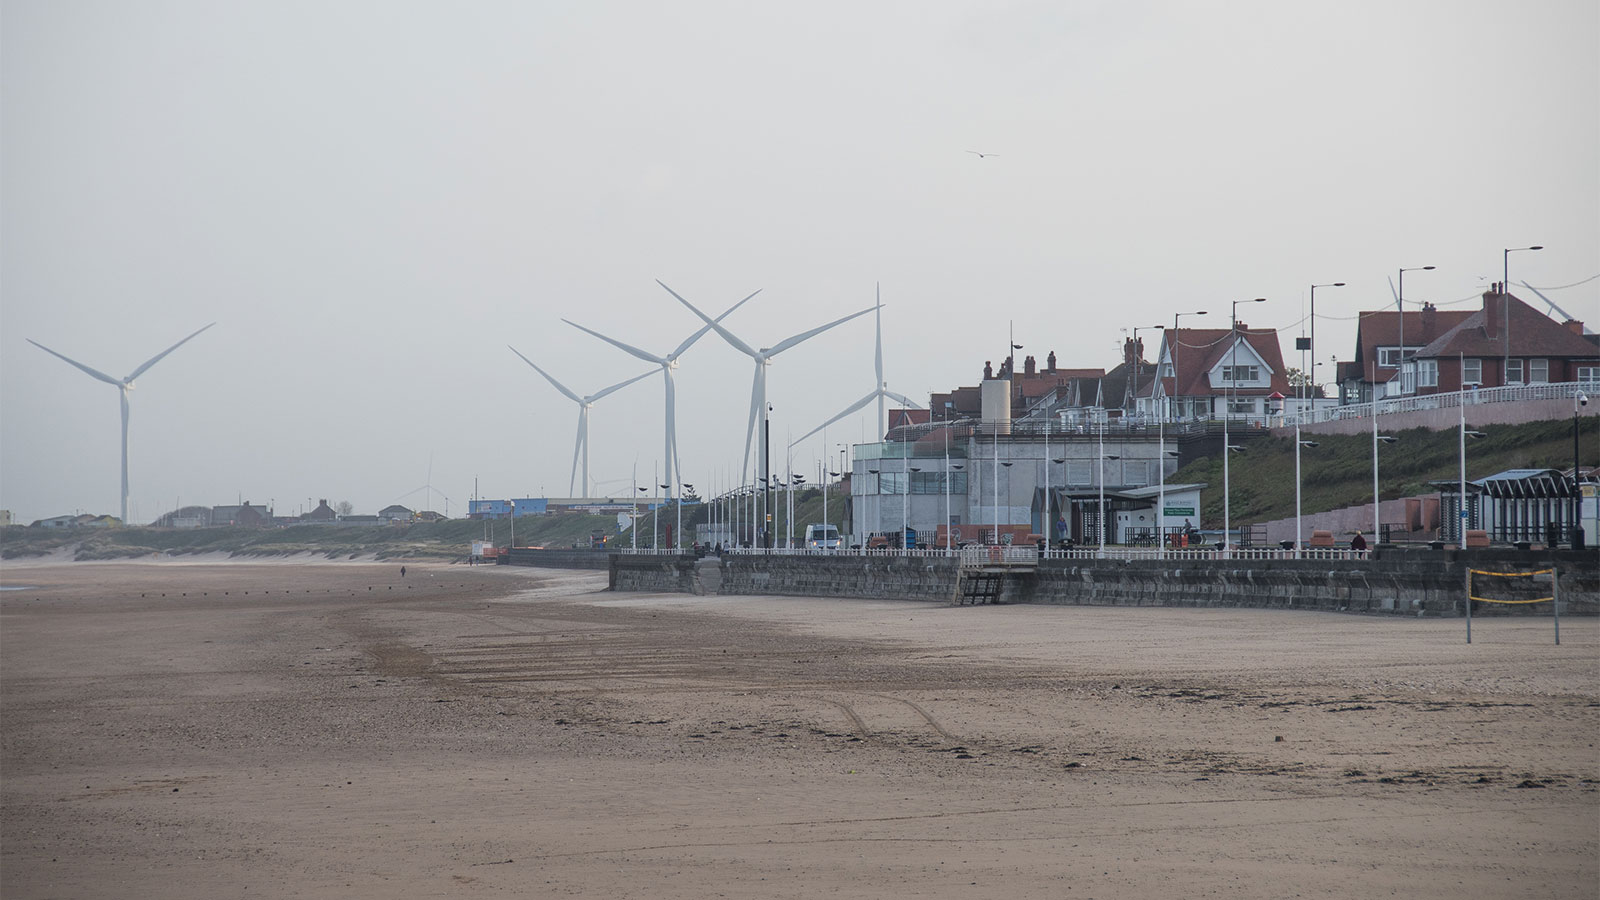 Photo of a beach community with wind turbines in the background